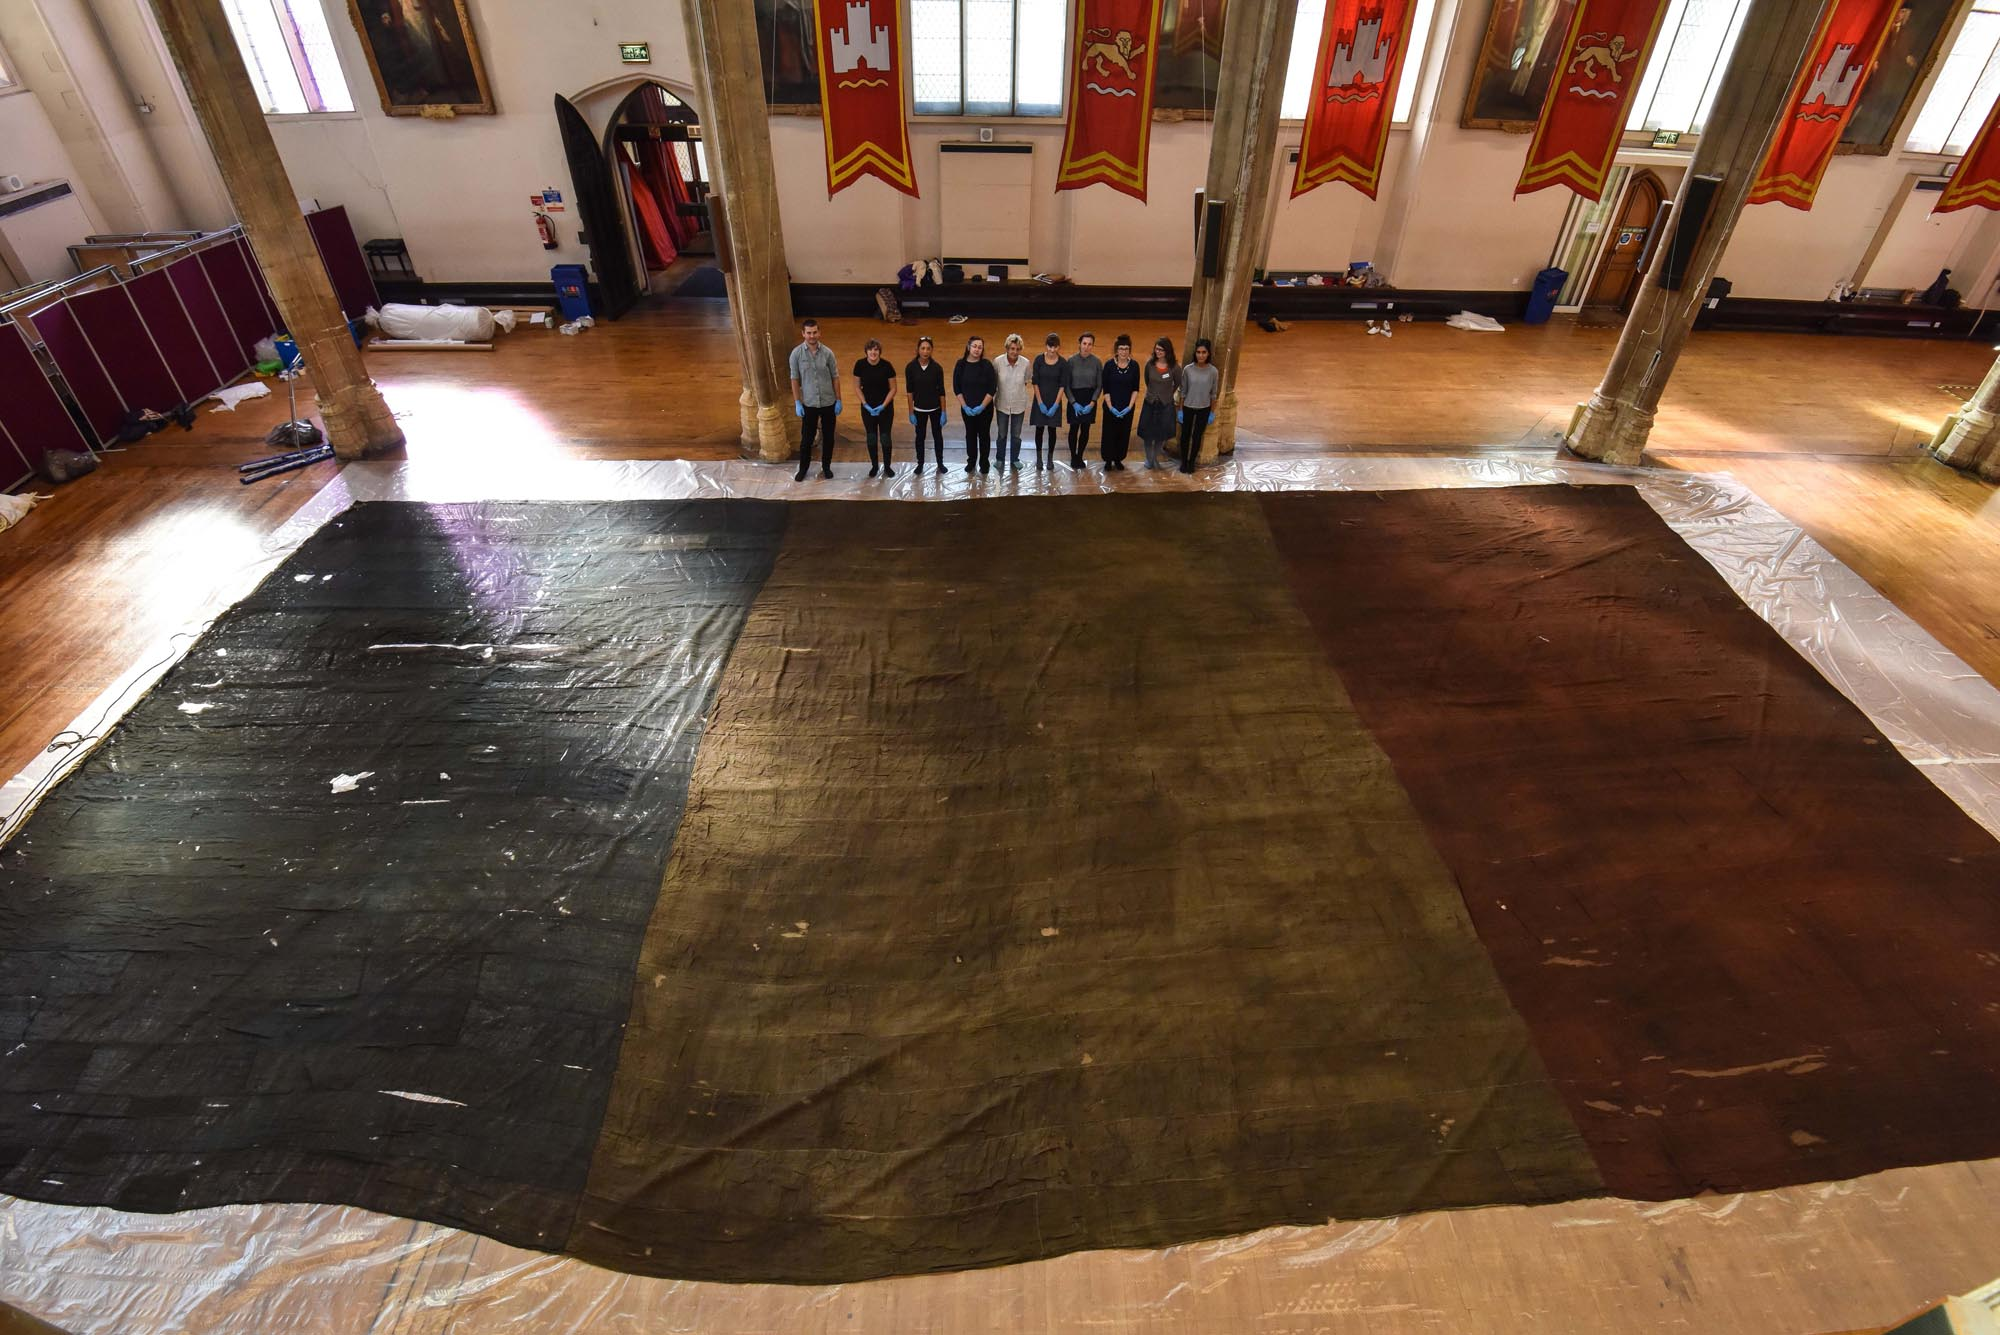 a photo of a vast French tricolor flag laid out in a hallway with people stanidng next to it